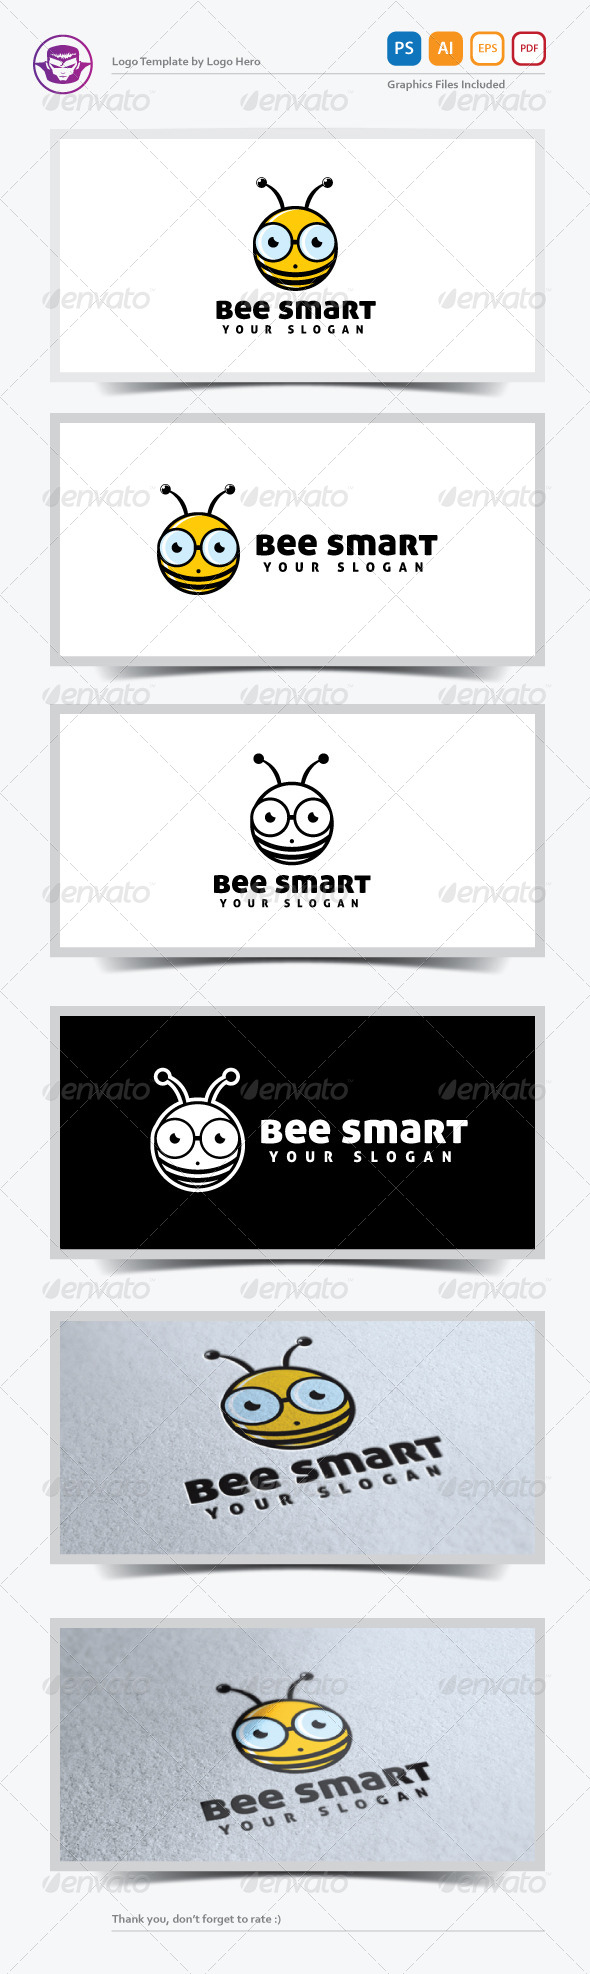 GraphicRiver Bee Smart Logo Template 5245655